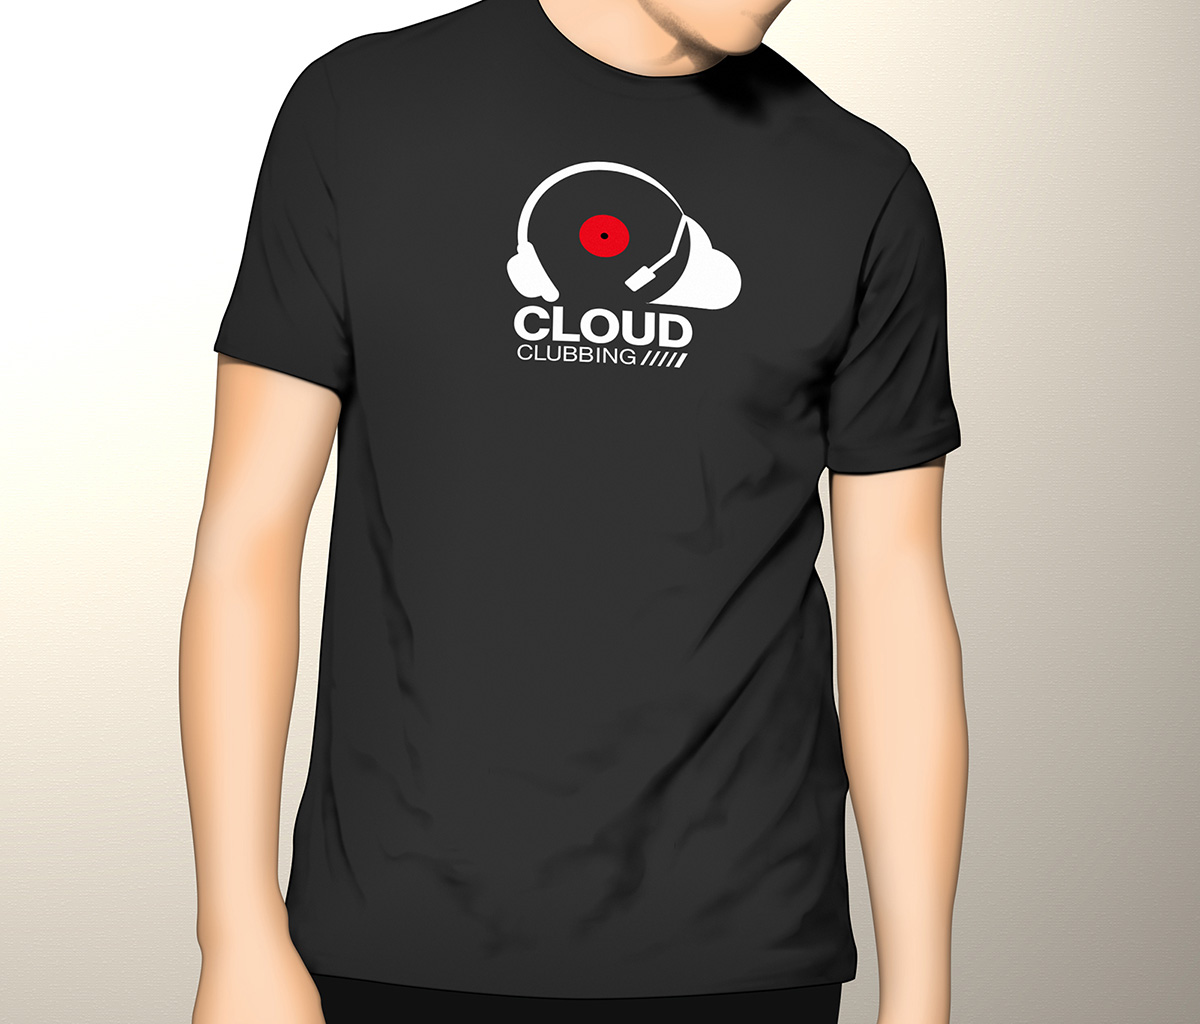 ZKM Cloud Clubbing T-Shirt Design